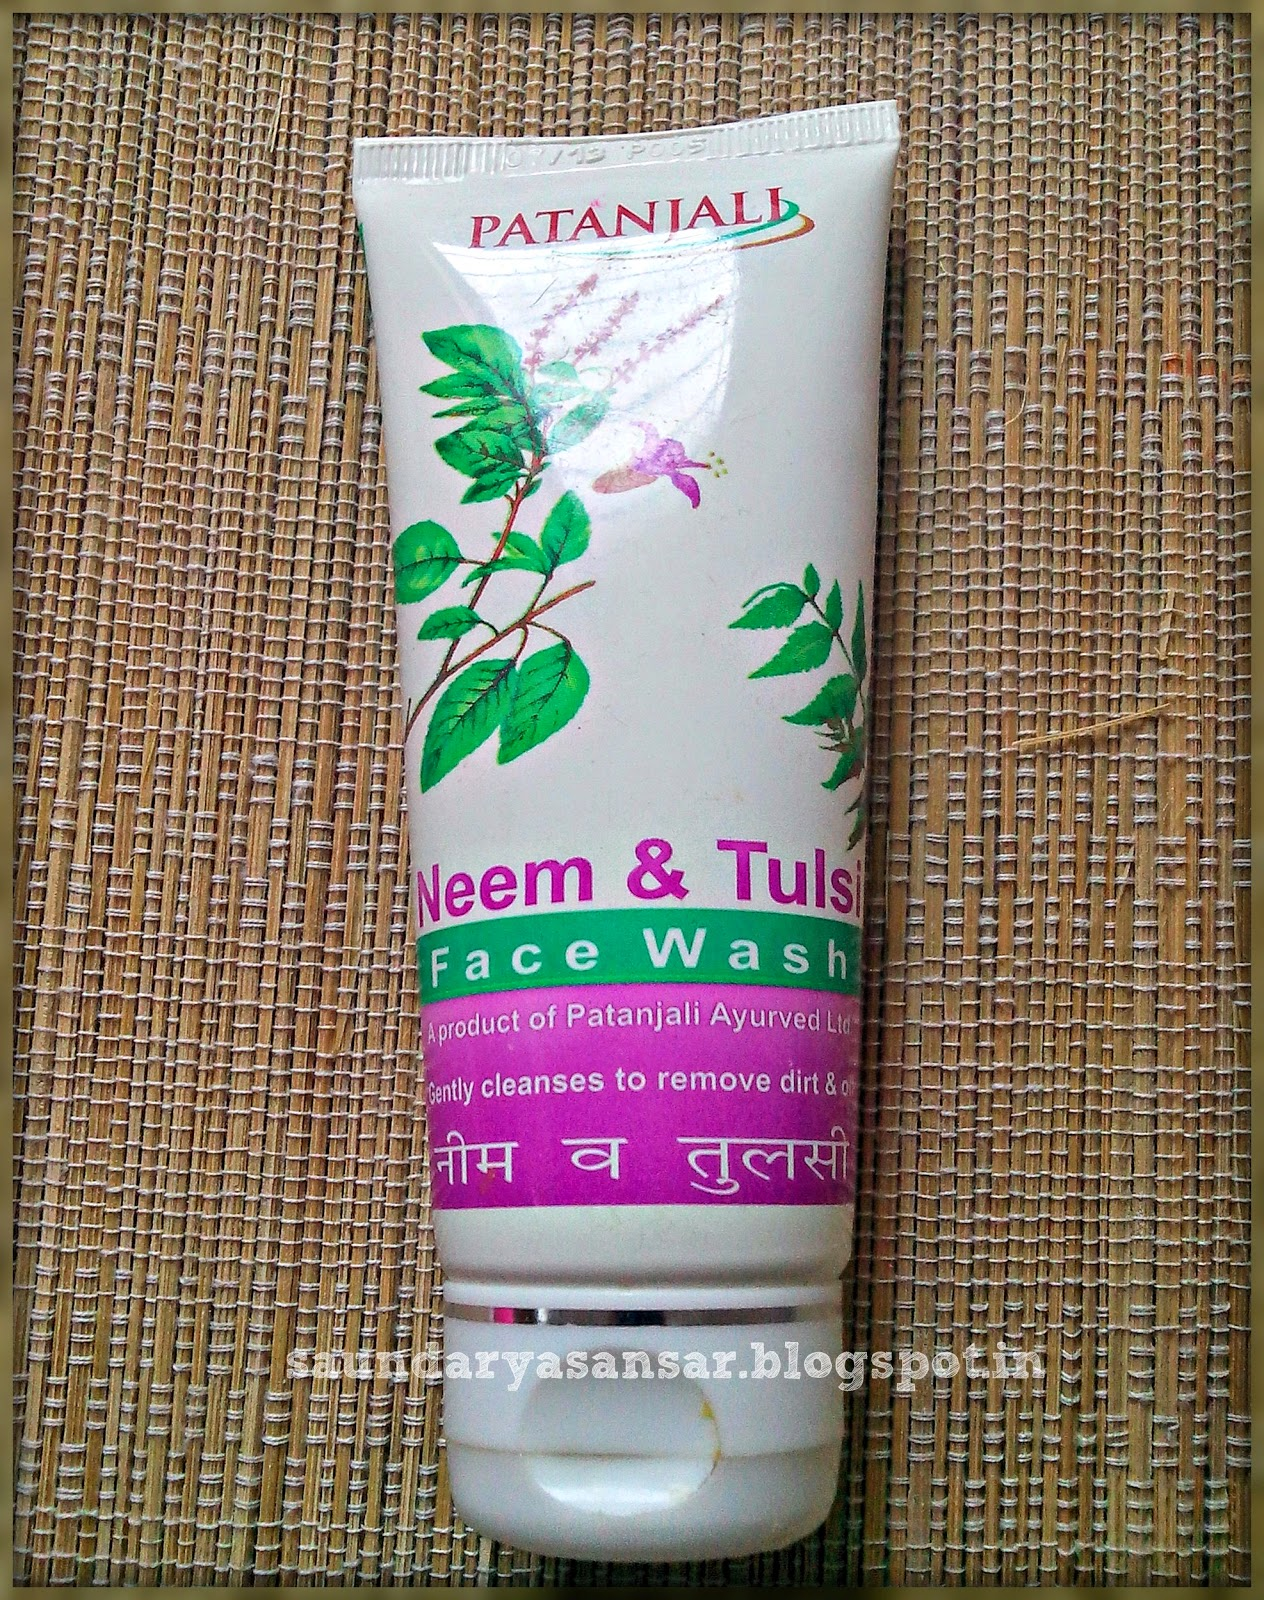 Patanjali-Neem-&-Tulsi-Gel-Face-wash-Review